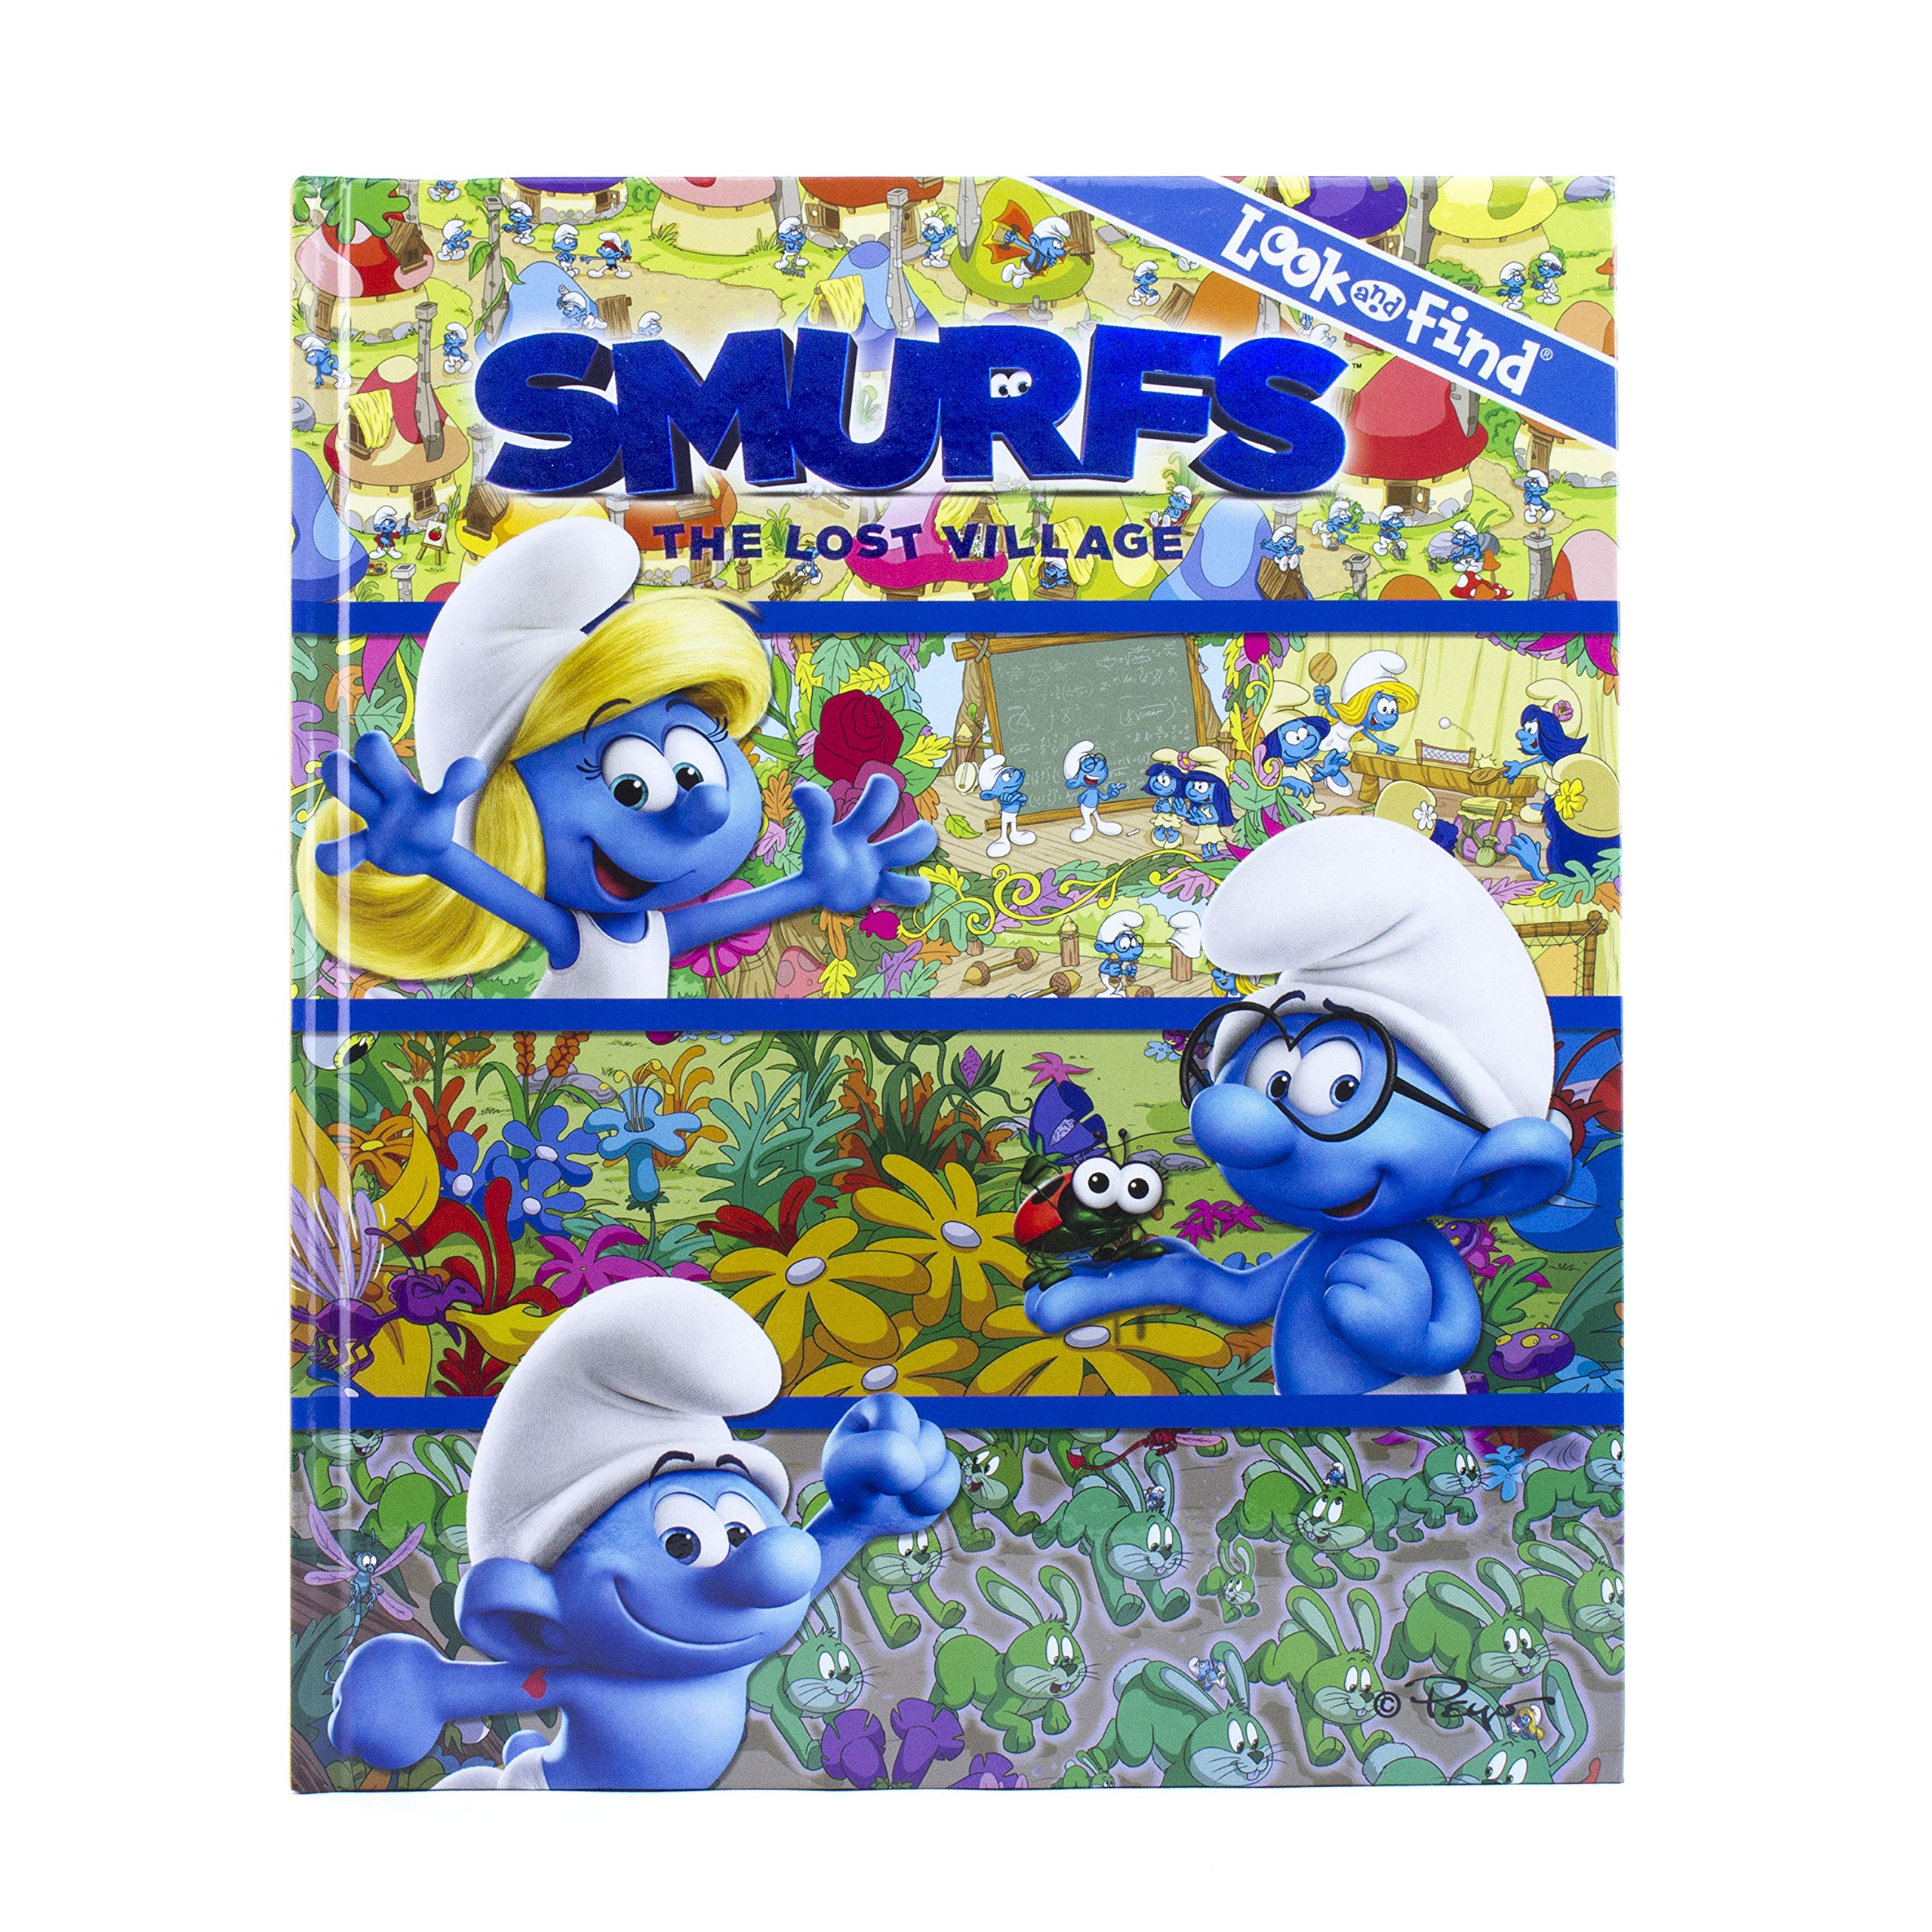 Smurfs 3 Look And Find The Lost Village Pi Kids Editors Of Phoenix International Publications Editors Of Phoenix International Publications Editors Of Phoenix International Publications Editors Of Phoenix International Publications 9781503715929